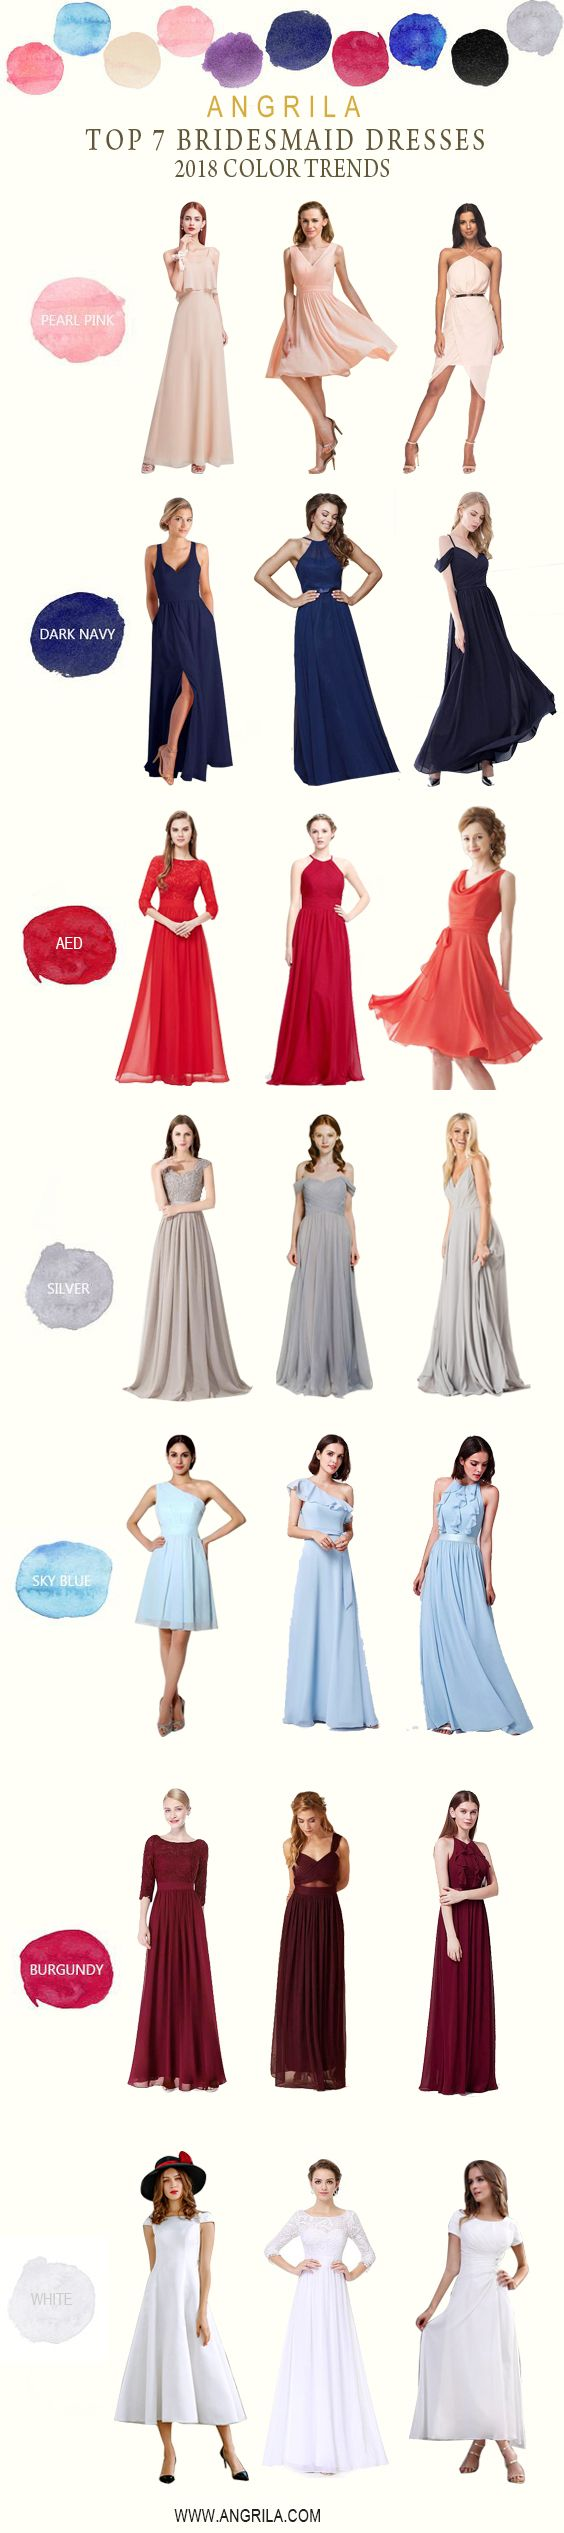 Buy funky bridesmaid dresses at angrila trendy colors pearl